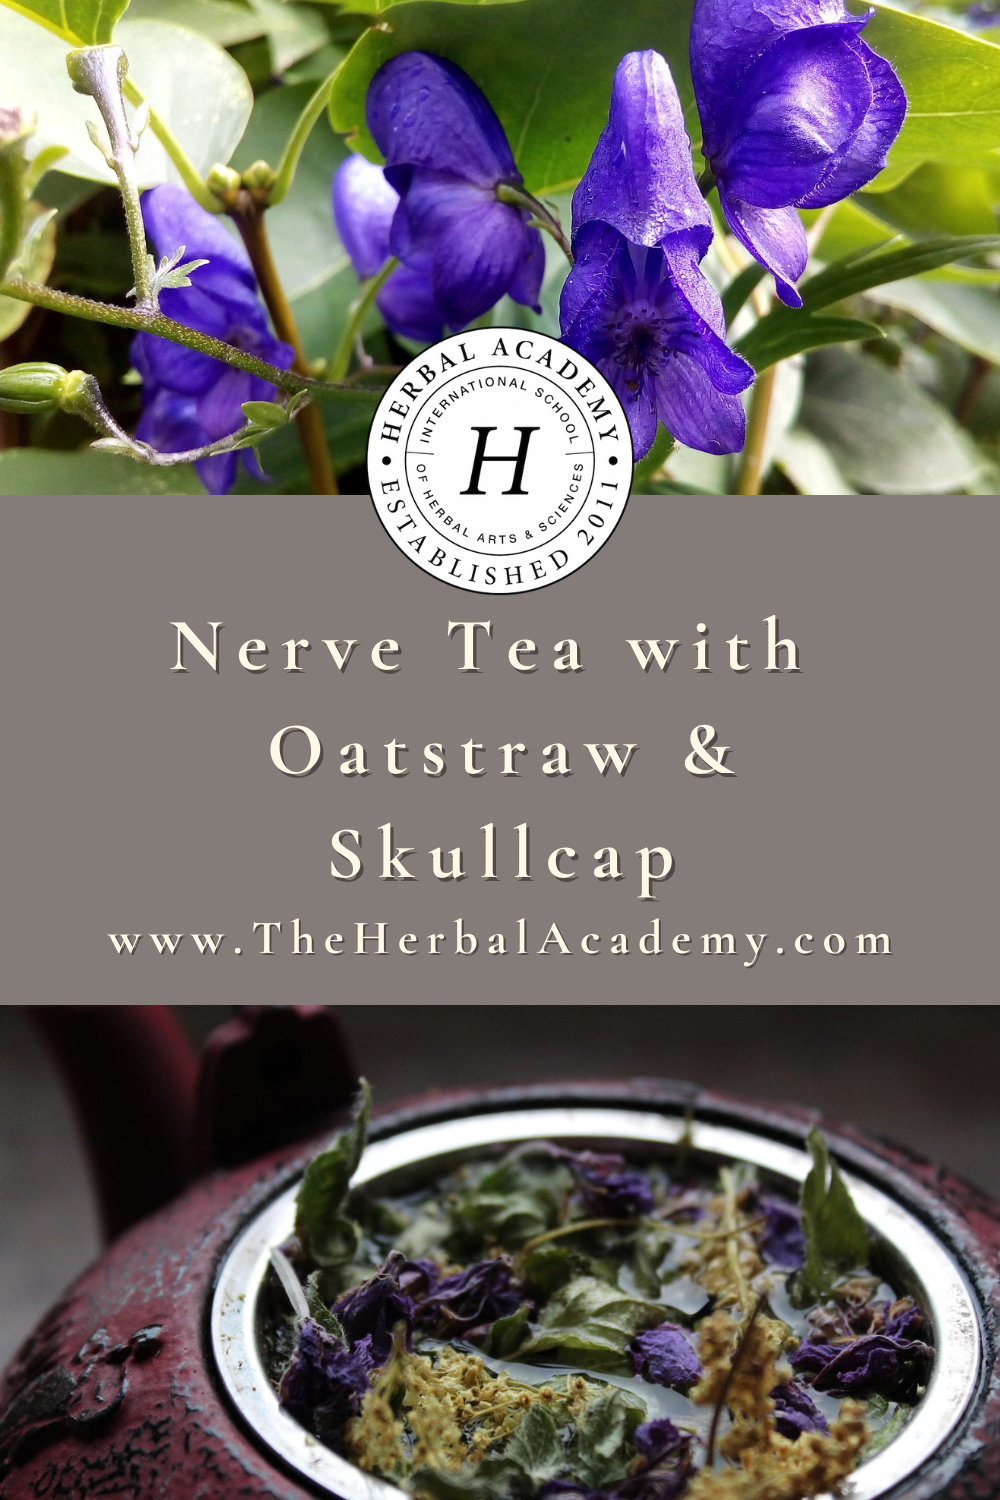 Nerve Tea with Oatstraw and Skullcap | Herbal Academy | Integrating this nerve tea recipe can help nourish a frayed nervous system while soothing the effects of constant nervous system stimulus.